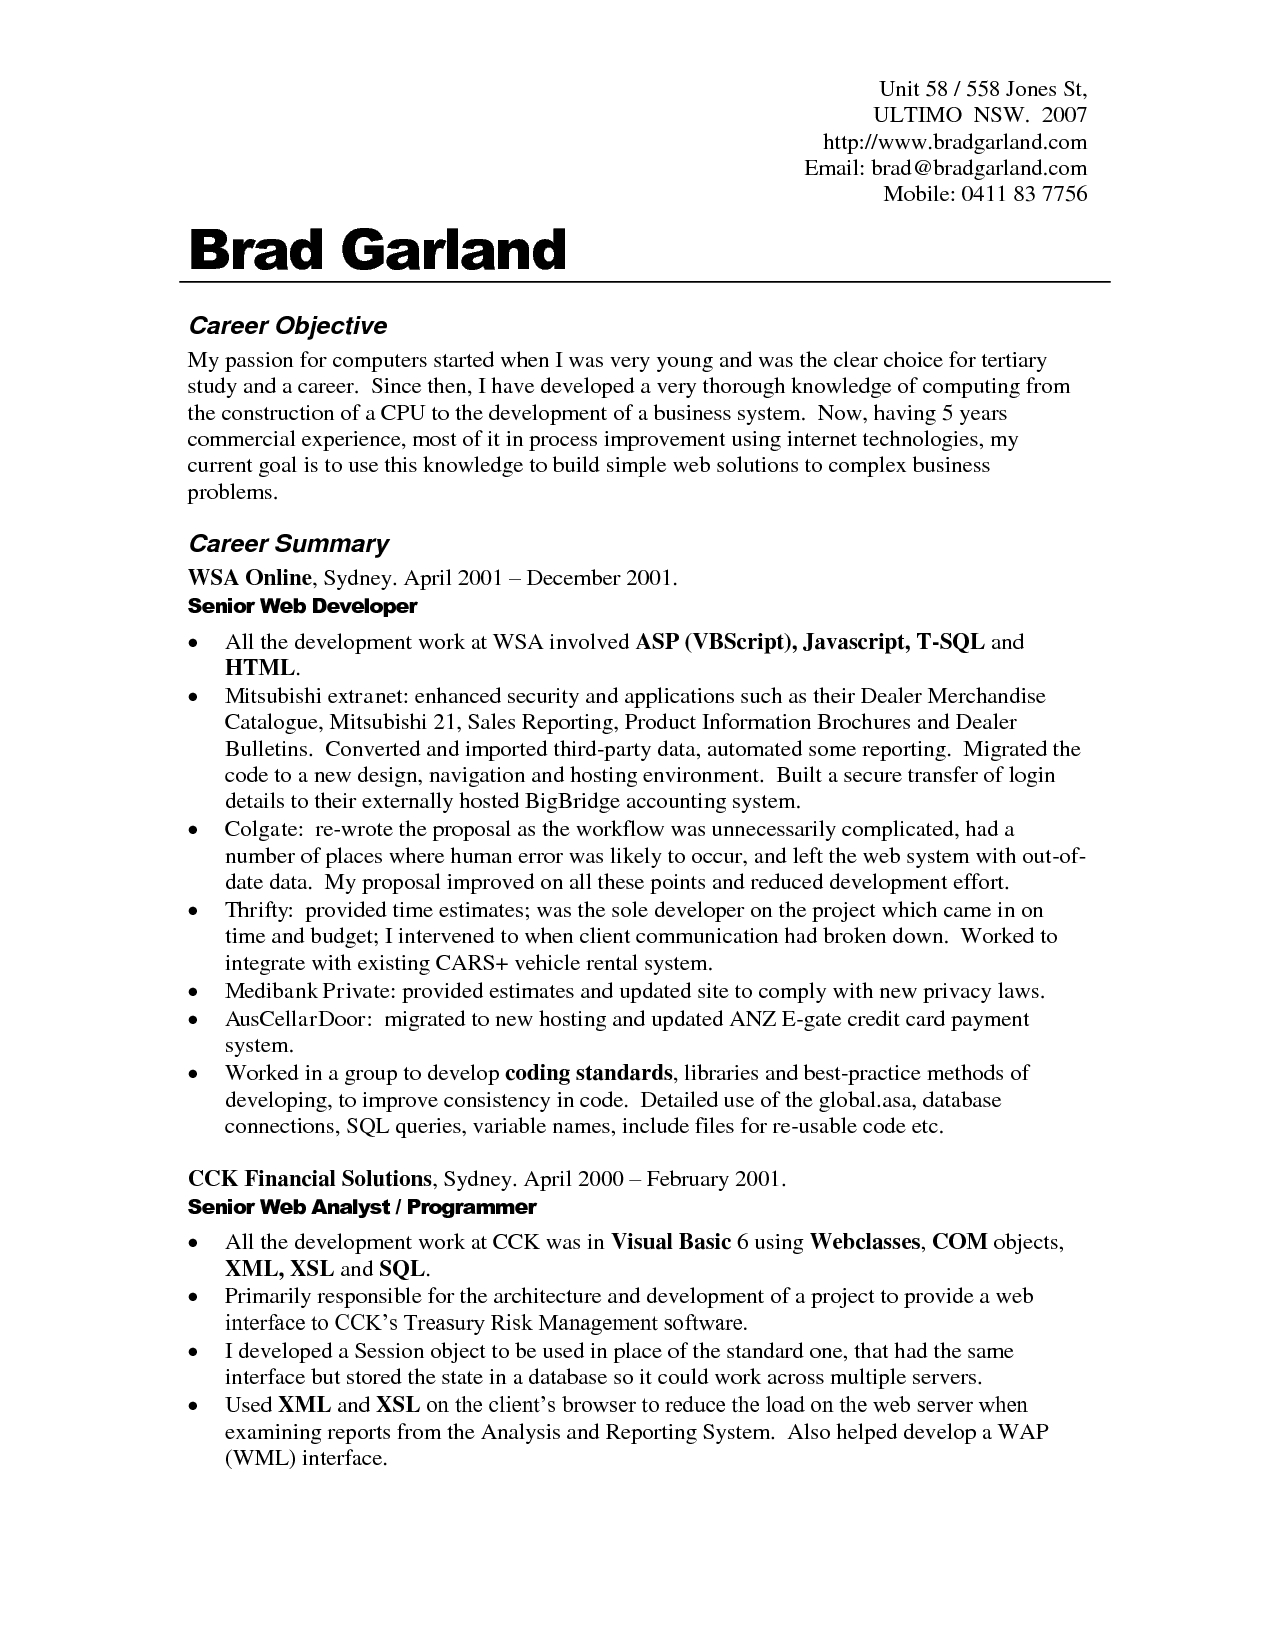 Great Job Resume Objectives  Objective Statements For A Resume